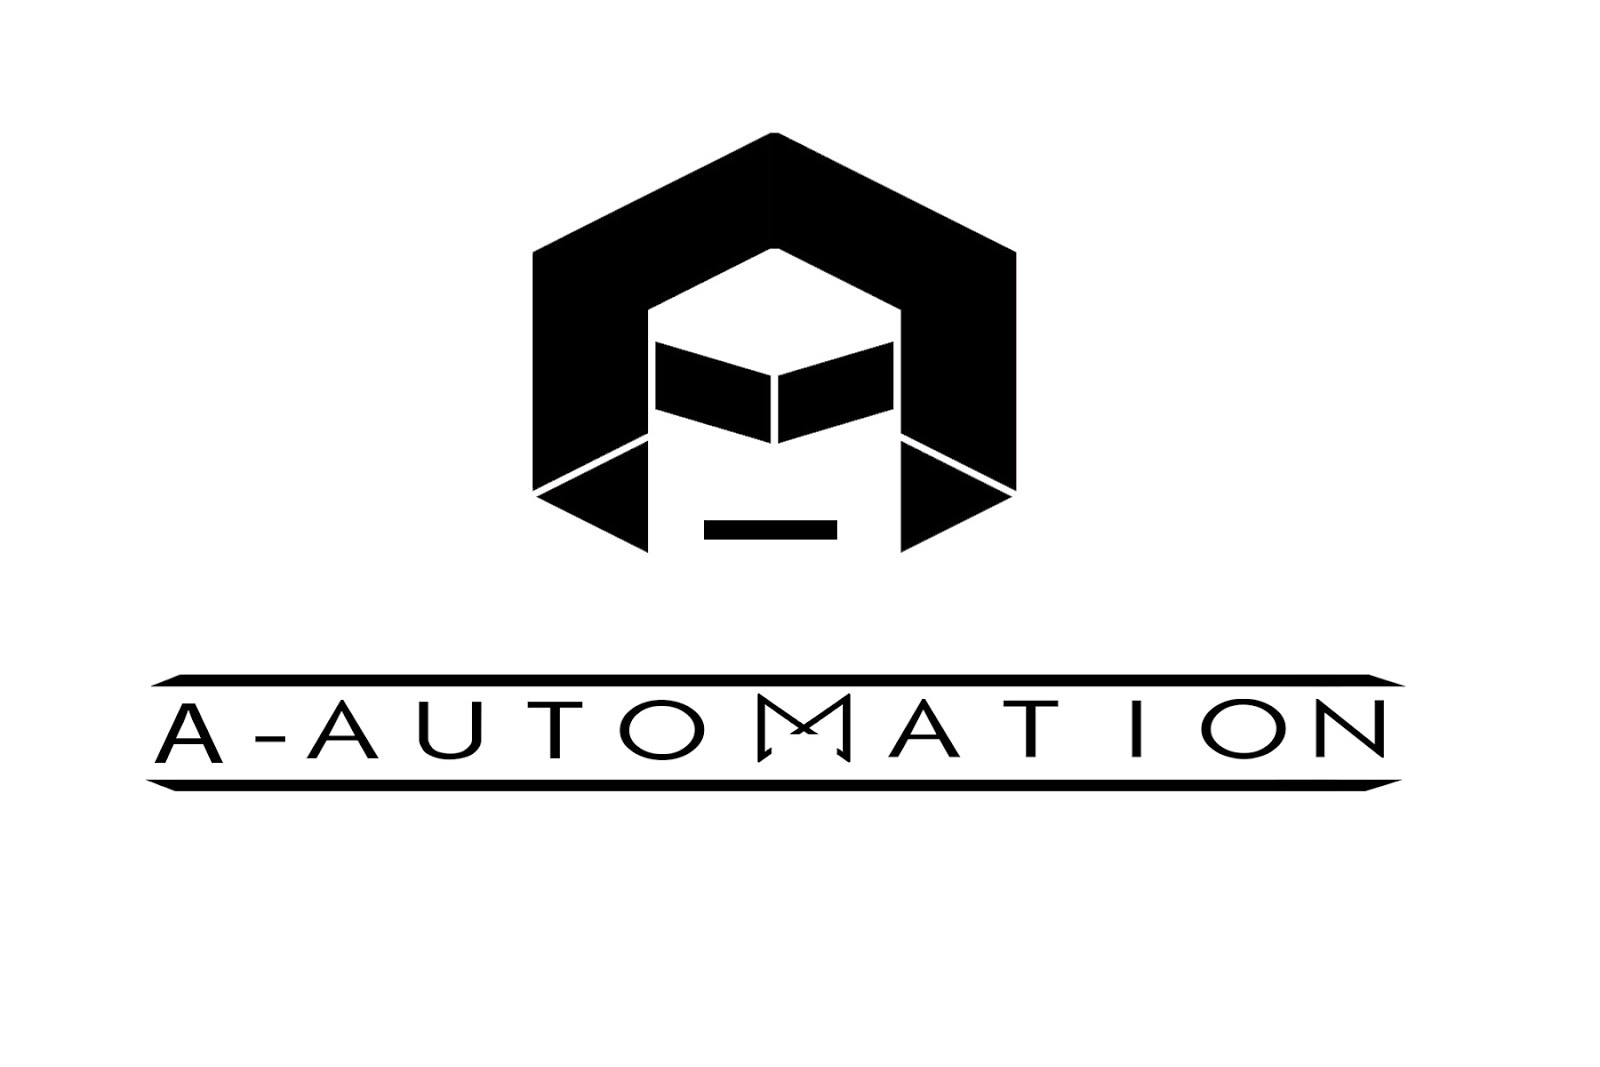 A-AUTOMATION